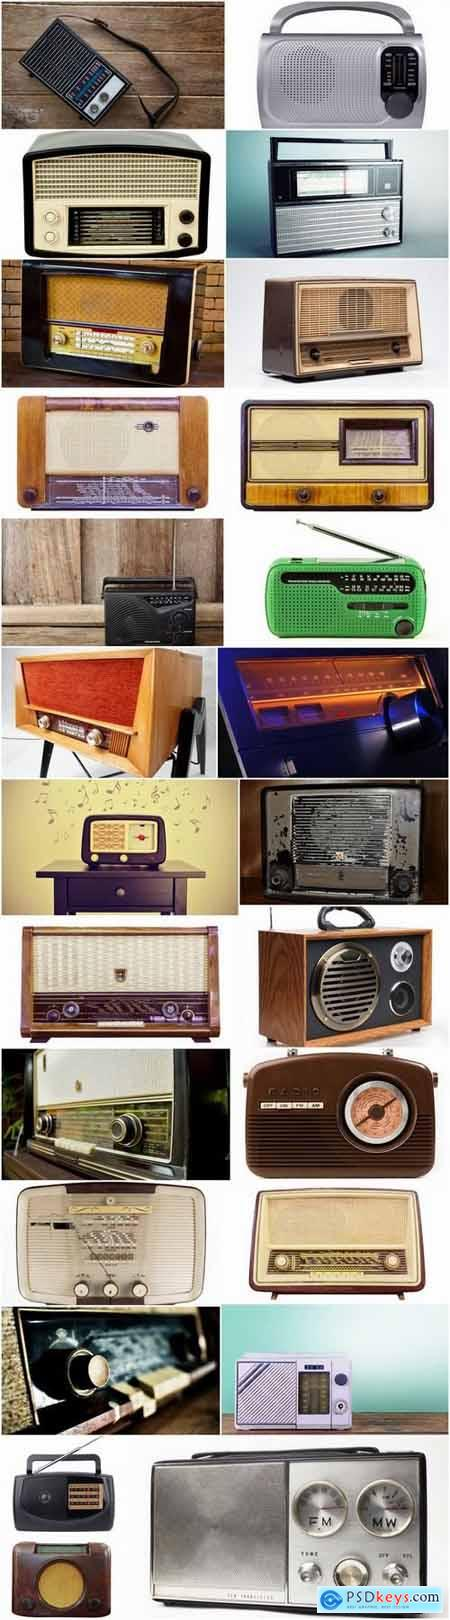 Different vintage radios 25 HQ Jpeg